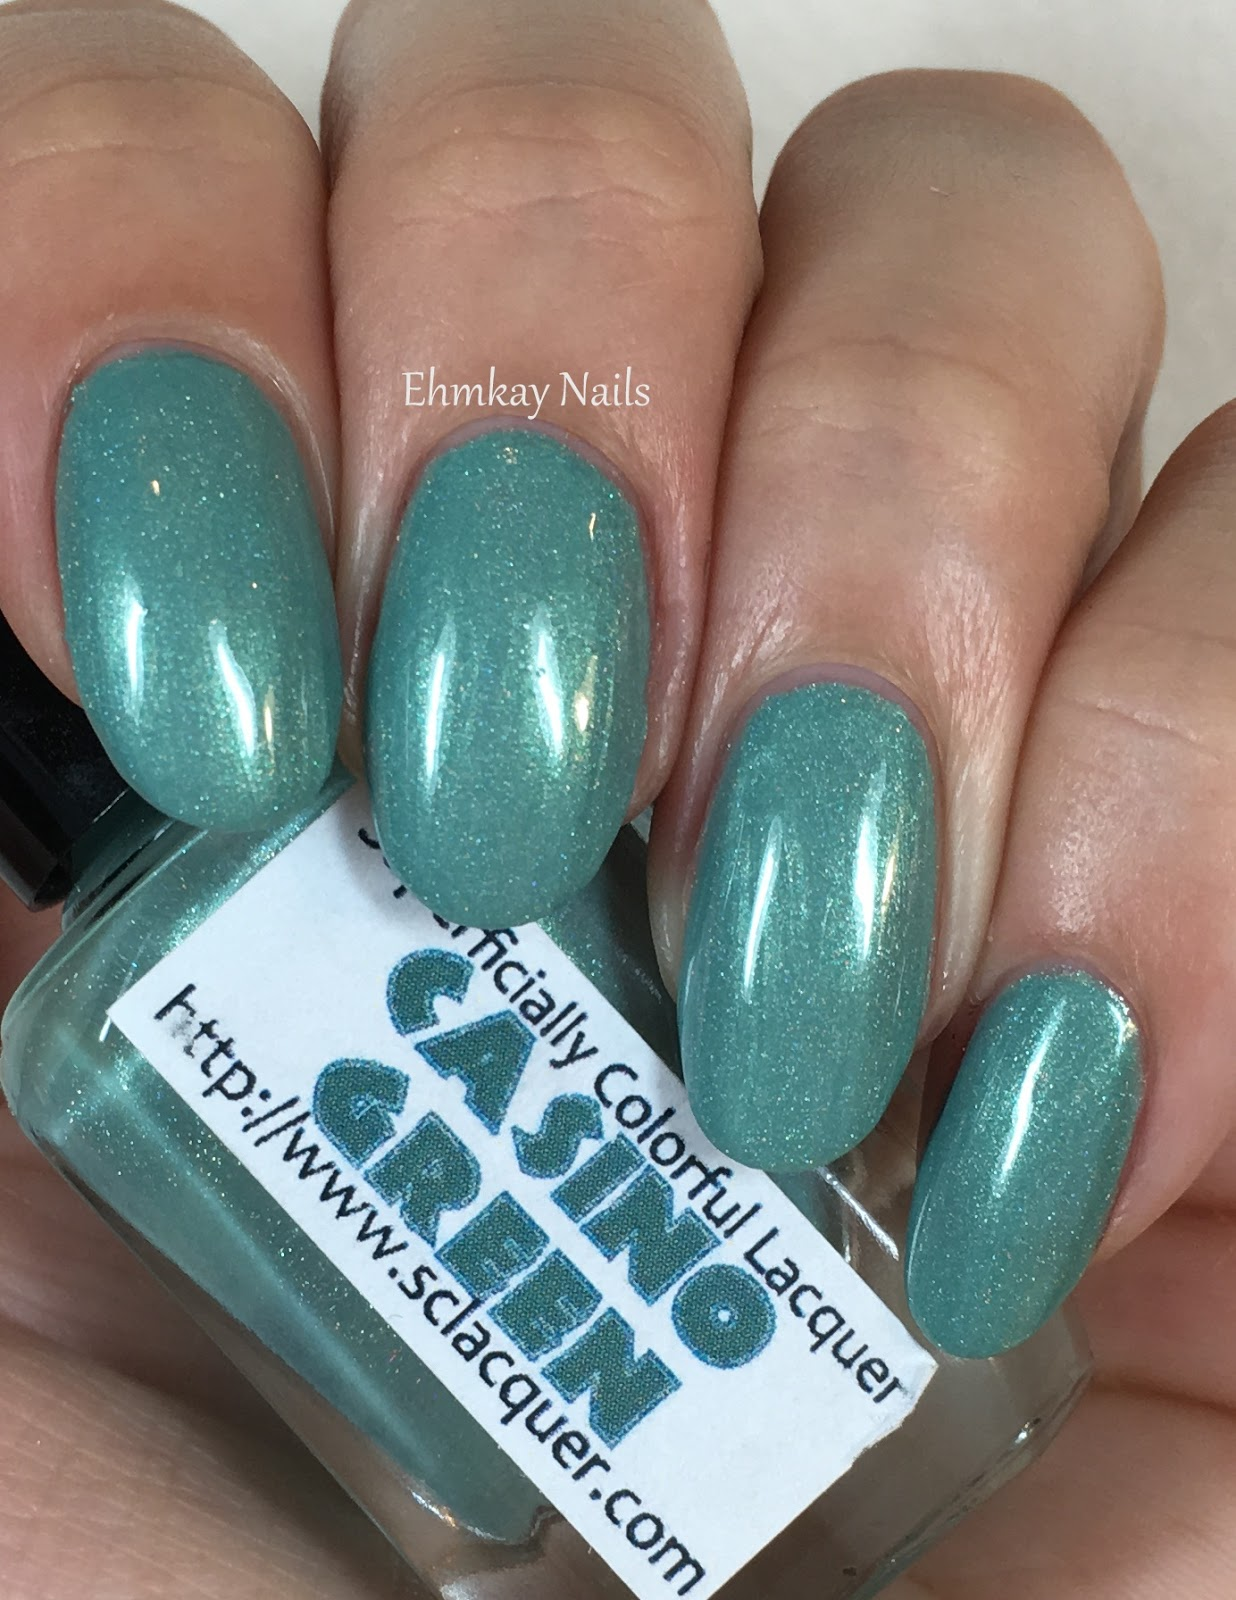 Ehmkay Nails Happy New Year S Eve Nail Art Stamping: Ehmkay Nails: Superficially Colorful Green Casino